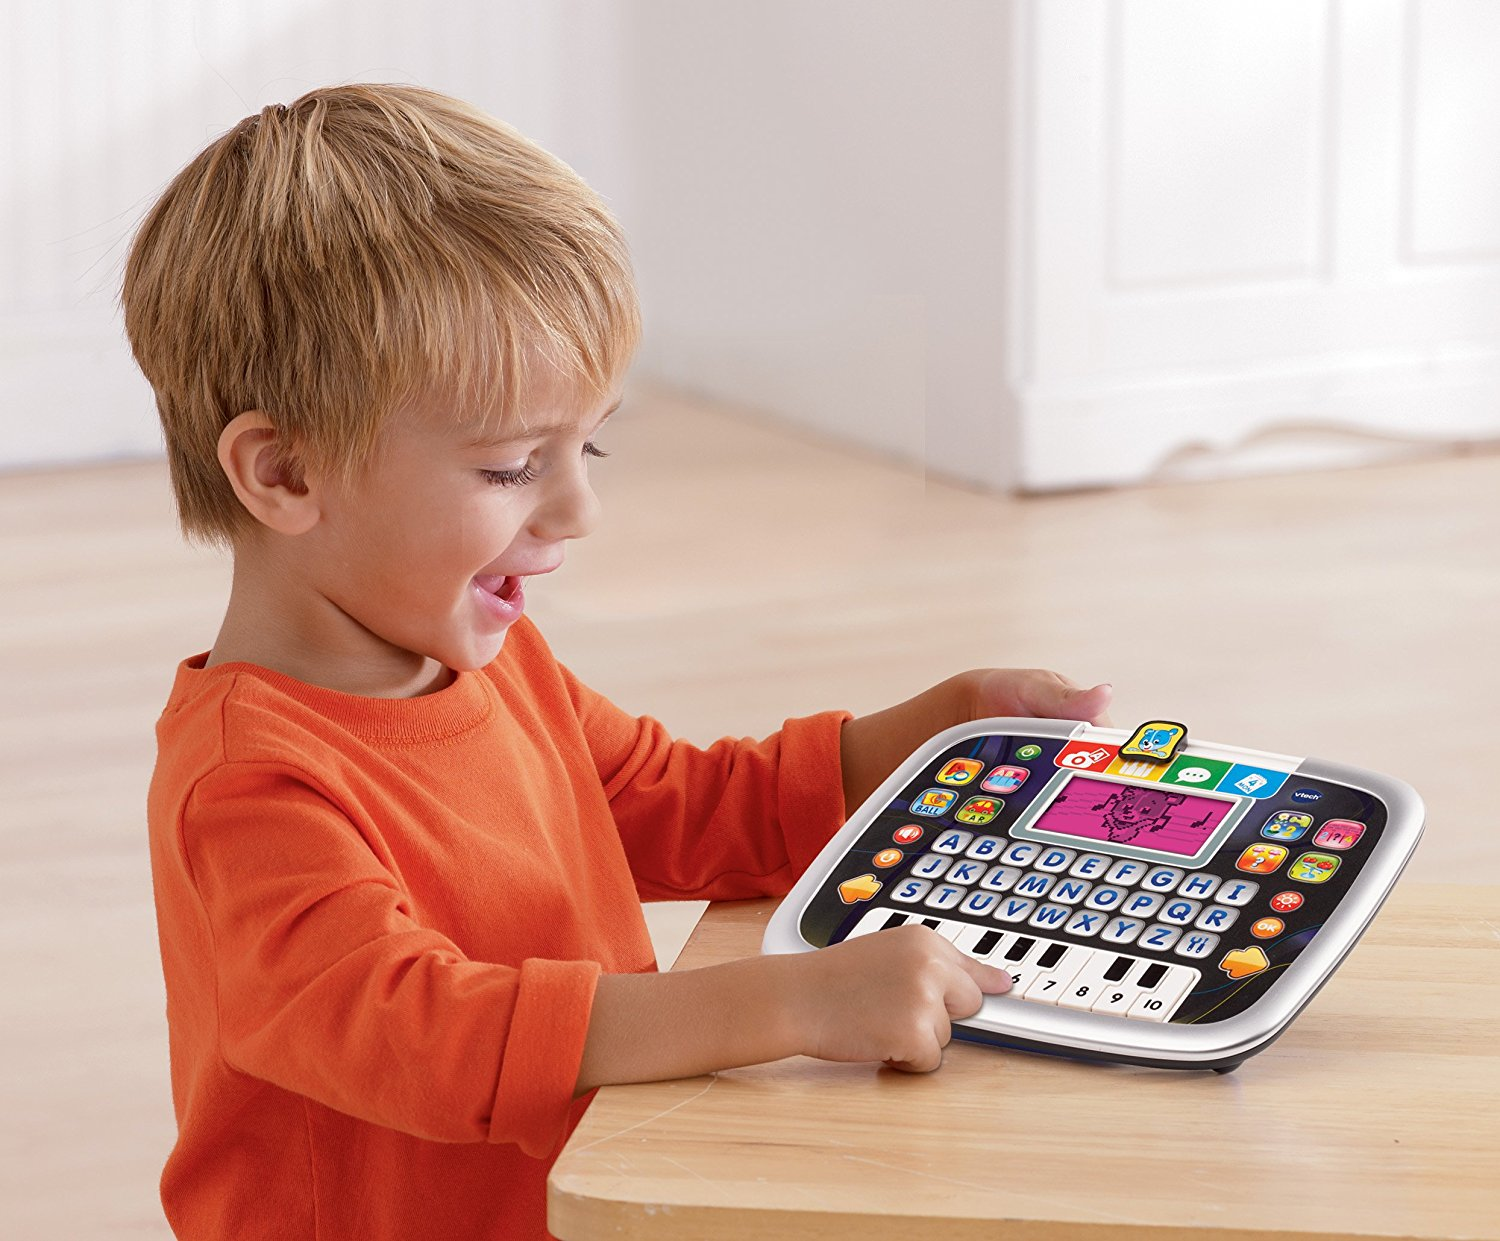 Educational Toys Age 2 : Coolest interactive toys for babies and toddlers oh my googoogaga